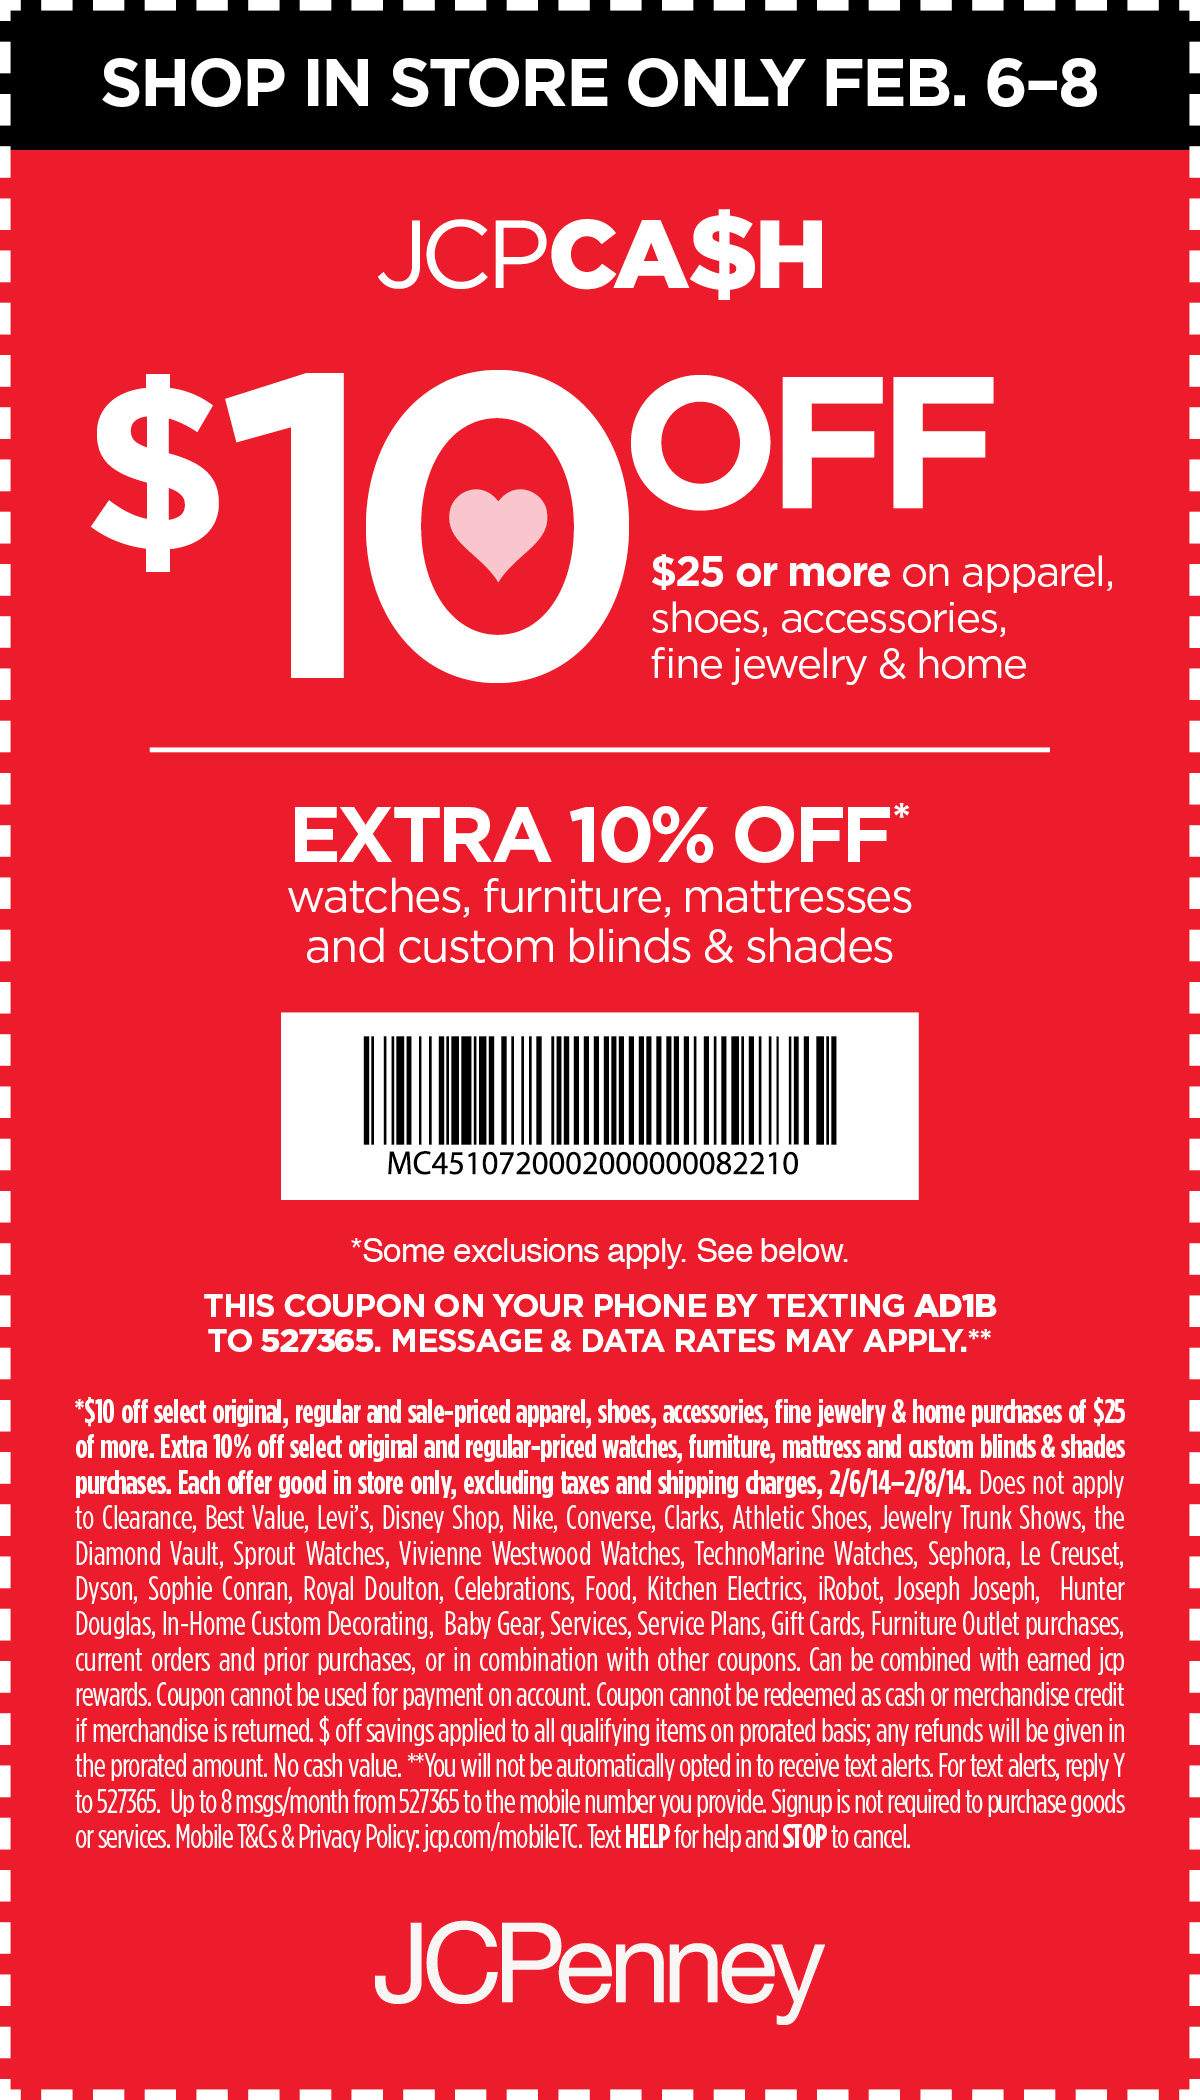 JCPenney Coupons: Save $10 Off $25 February 6